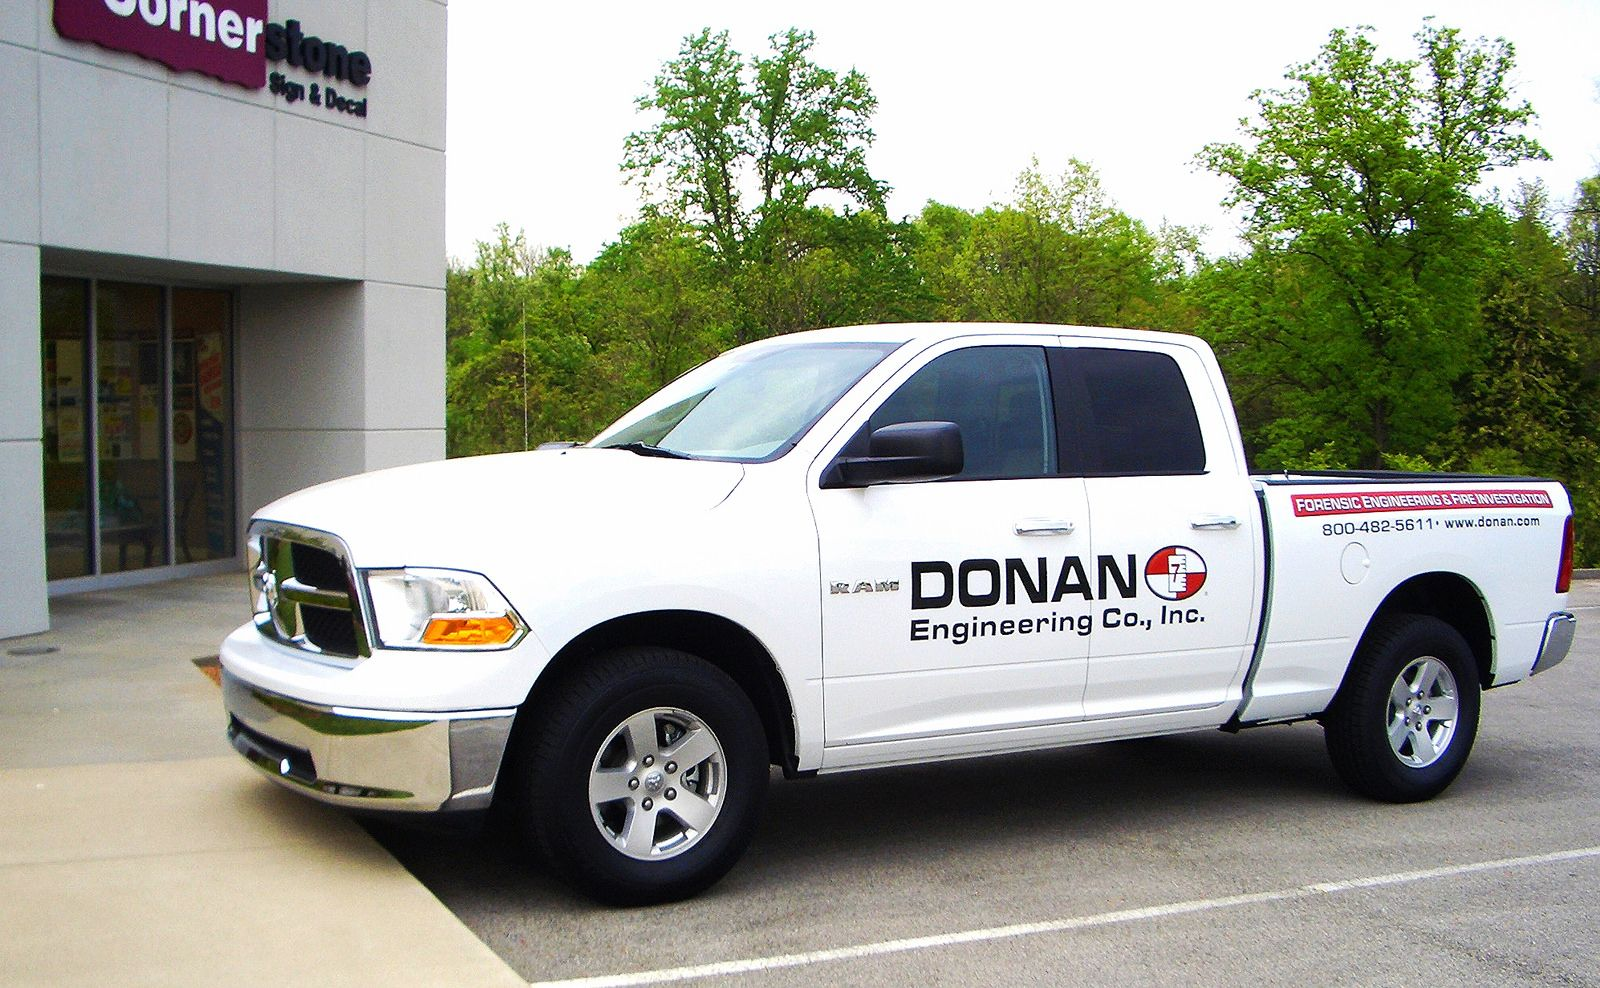 Custom Vinyl Decals For A Business Truck Car Graphics